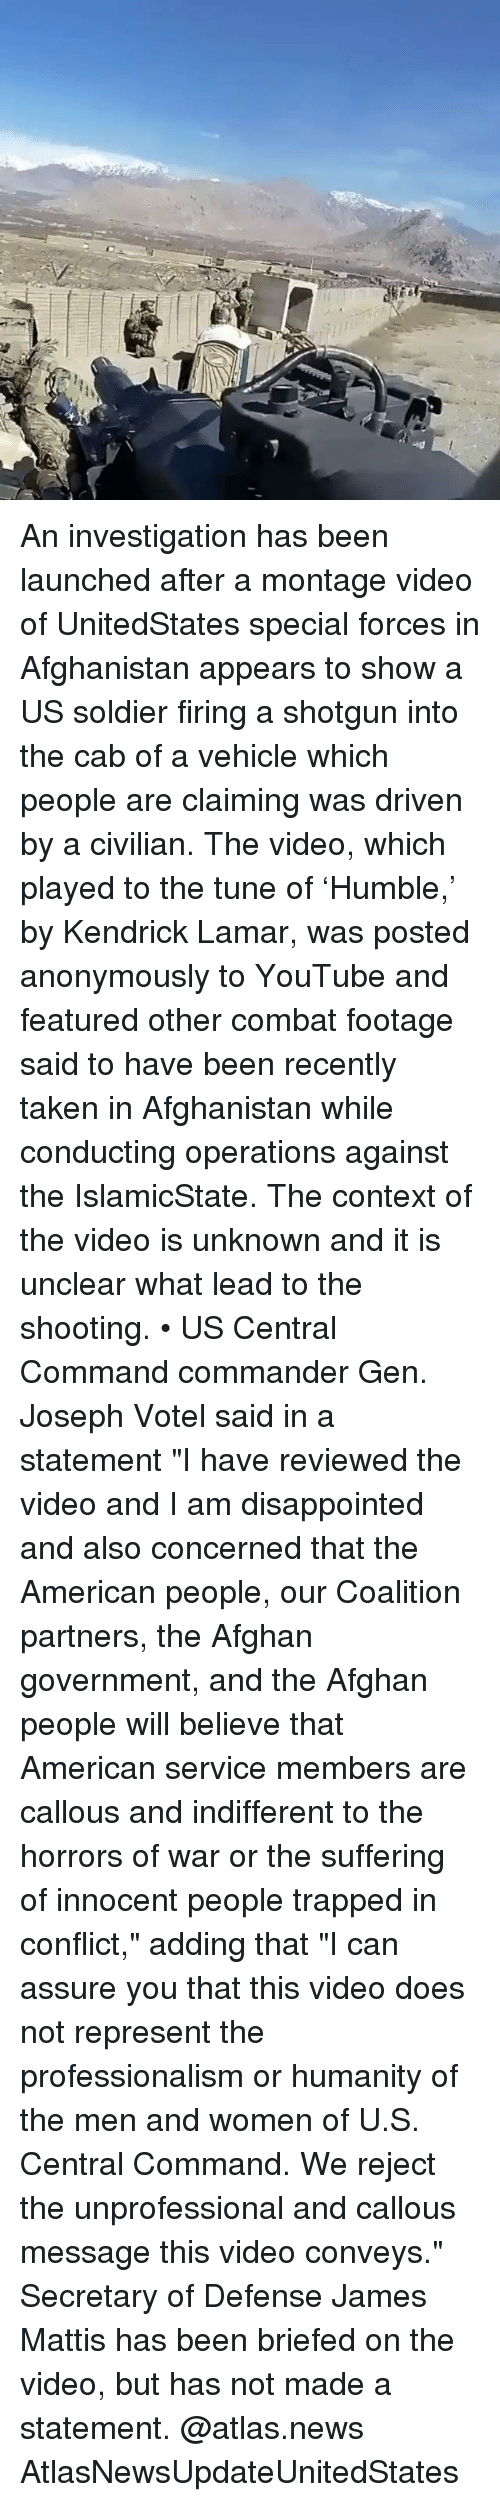 """Disappointed, Kendrick Lamar, and Memes: An investigation has been launched after a montage video of UnitedStates special forces in Afghanistan appears to show a US soldier firing a shotgun into the cab of a vehicle which people are claiming was driven by a civilian. The video, which played to the tune of 'Humble,' by Kendrick Lamar, was posted anonymously to YouTube and featured other combat footage said to have been recently taken in Afghanistan while conducting operations against the IslamicState. The context of the video is unknown and it is unclear what lead to the shooting. • US Central Command commander Gen. Joseph Votel said in a statement """"I have reviewed the video and I am disappointed and also concerned that the American people, our Coalition partners, the Afghan government, and the Afghan people will believe that American service members are callous and indifferent to the horrors of war or the suffering of innocent people trapped in conflict,"""" adding that """"I can assure you that this video does not represent the professionalism or humanity of the men and women of U.S. Central Command. We reject the unprofessional and callous message this video conveys."""" Secretary of Defense James Mattis has been briefed on the video, but has not made a statement. @atlas.news AtlasNewsUpdateUnitedStates"""